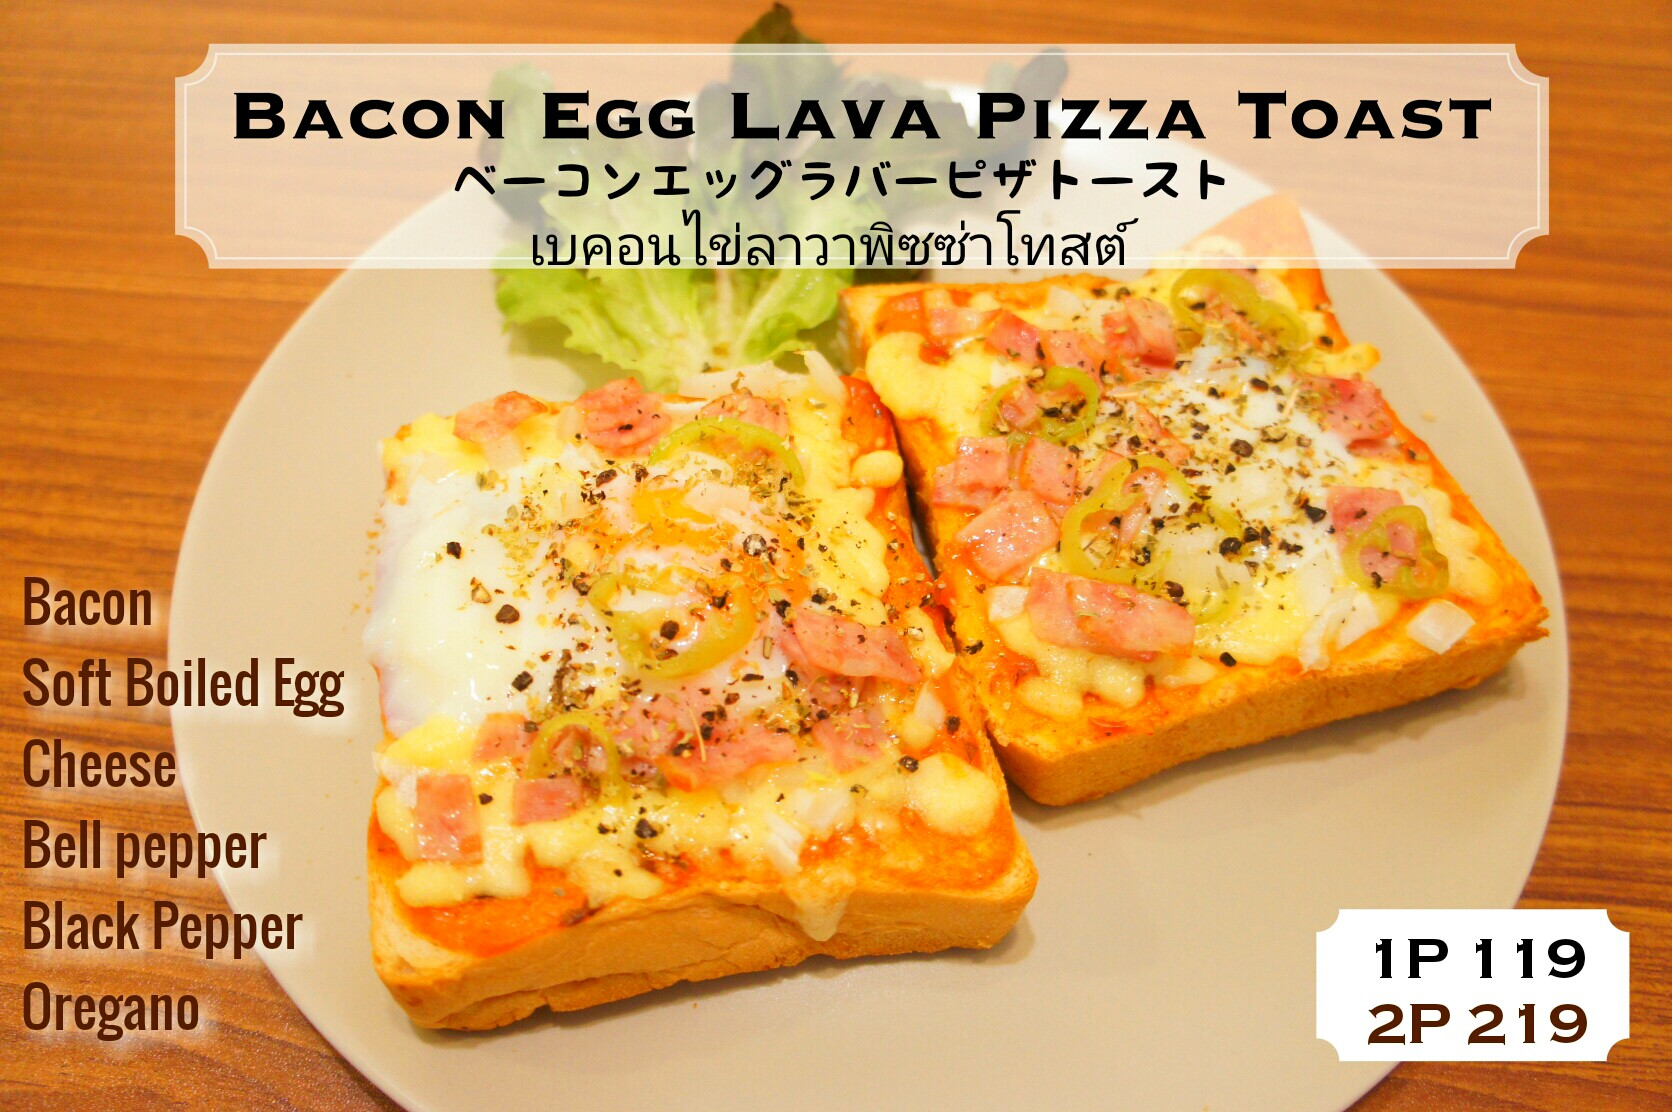 Bacon Egg Lava Pizza Toast